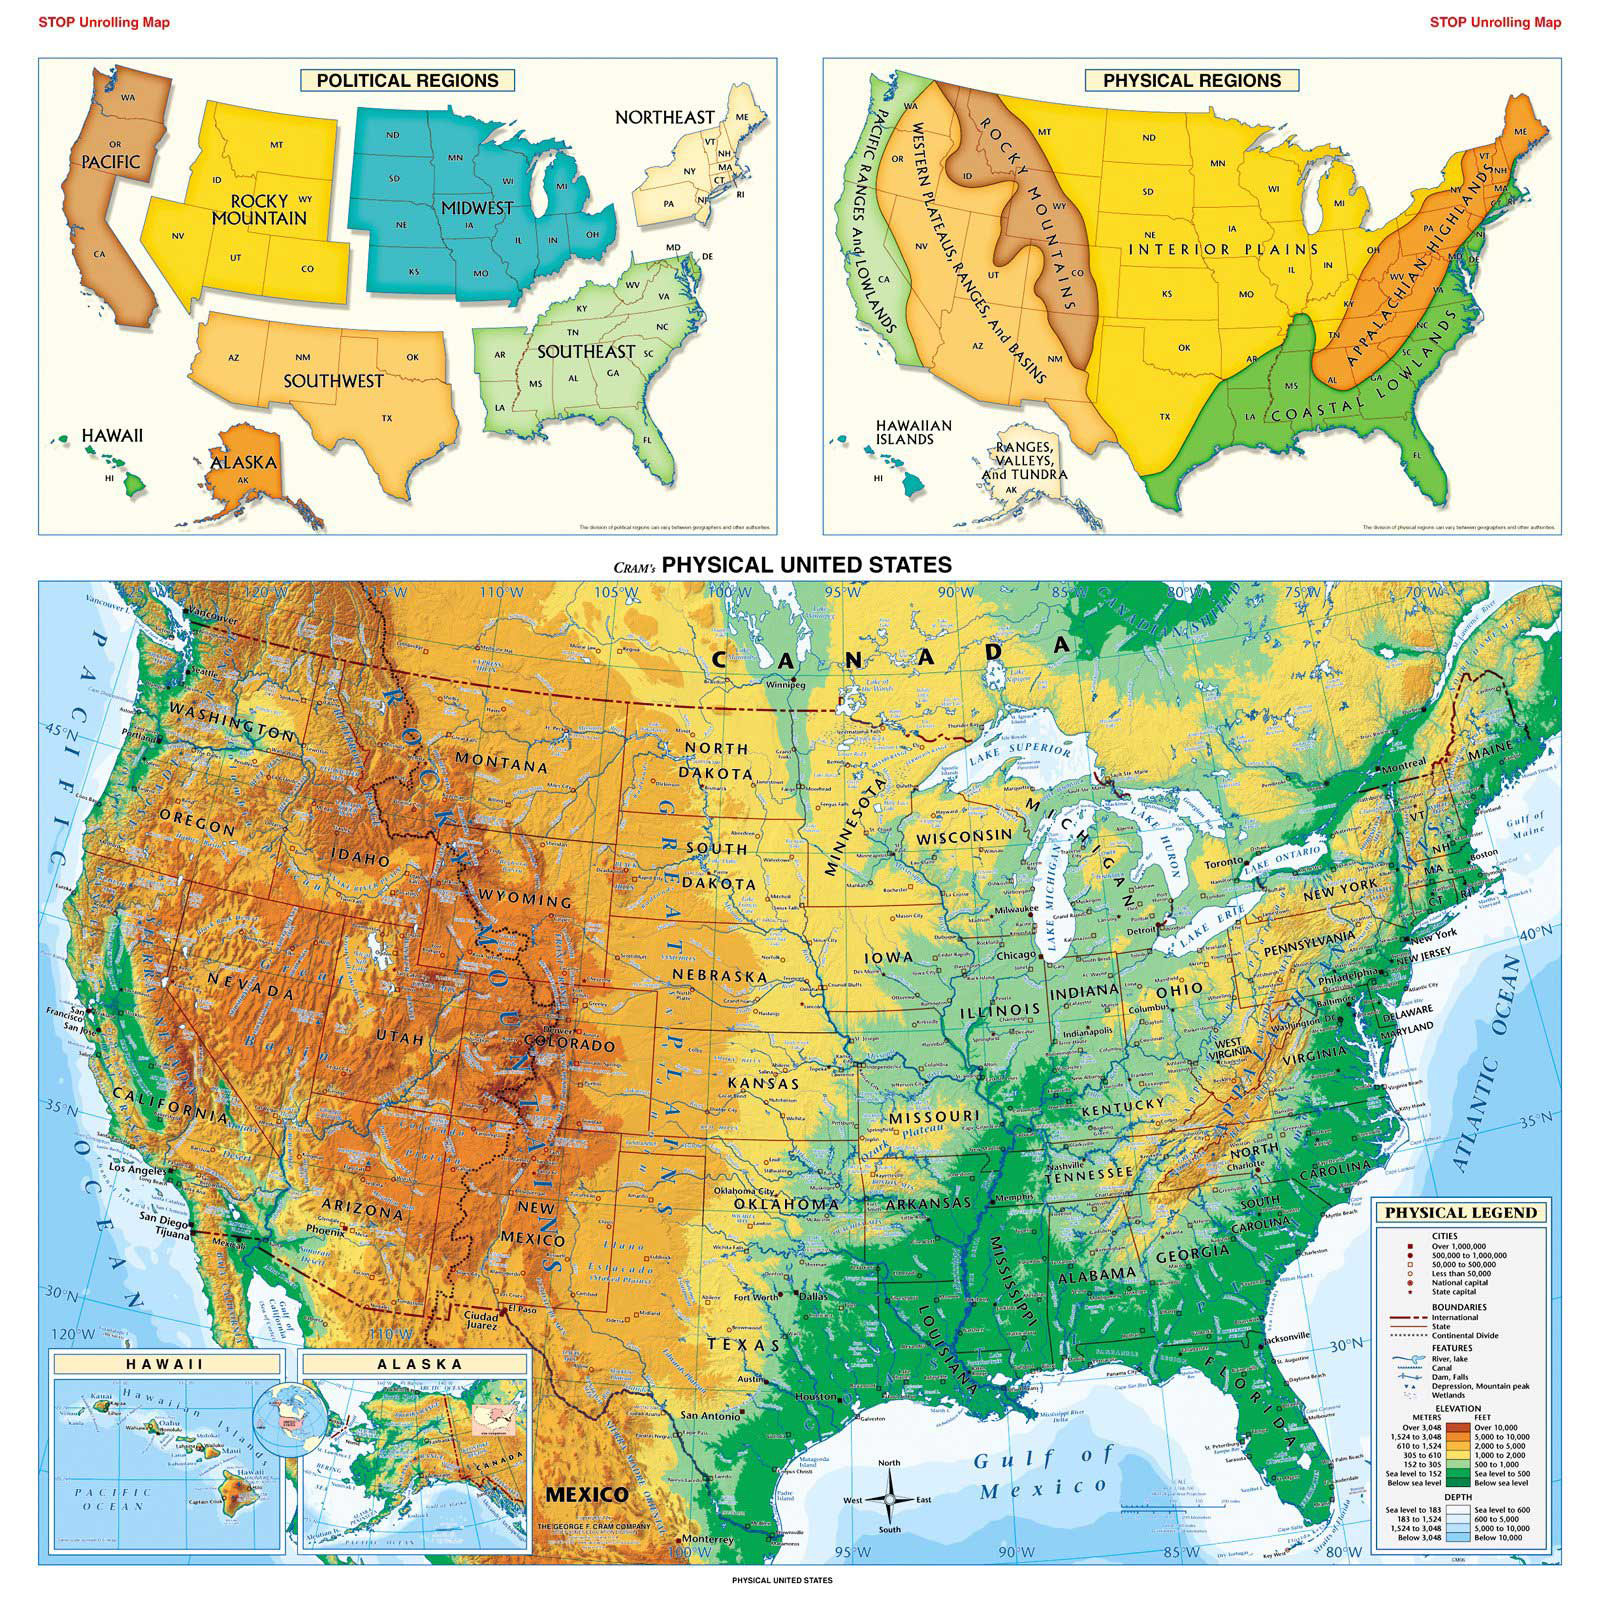 Large Detailed Physical Map Of The USA The USA Large Detailed - Large detailed us map